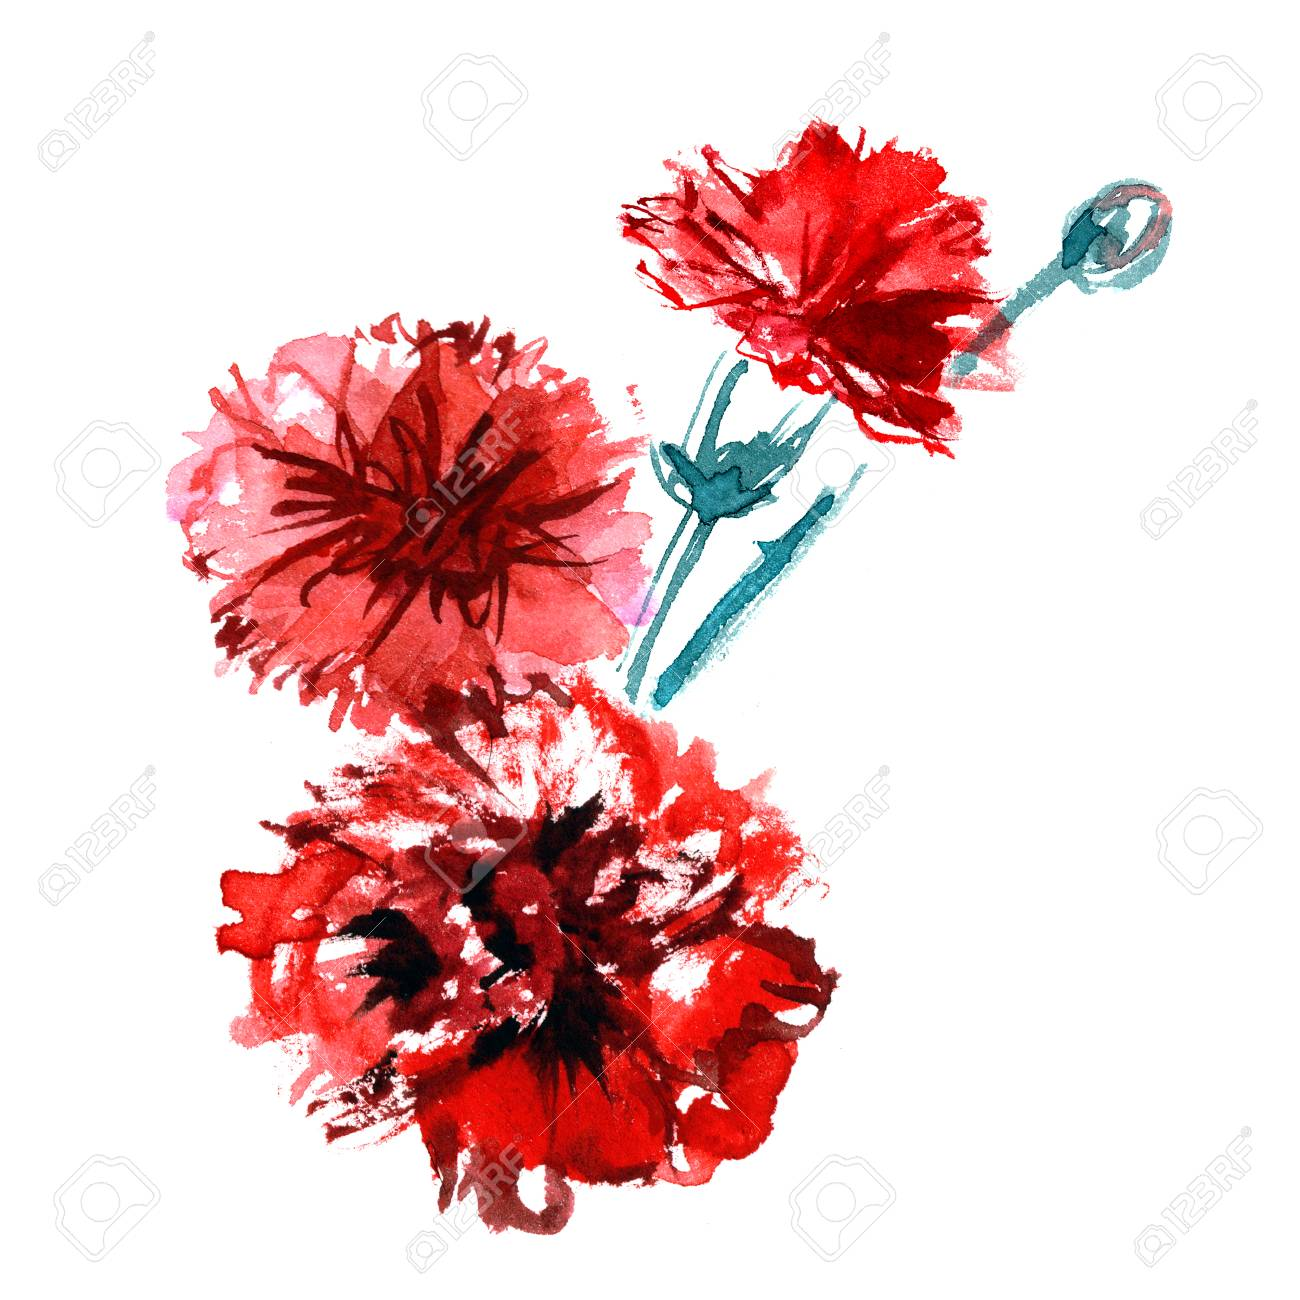 Watercolor Hand Painted Carnations Isolated On A White Background